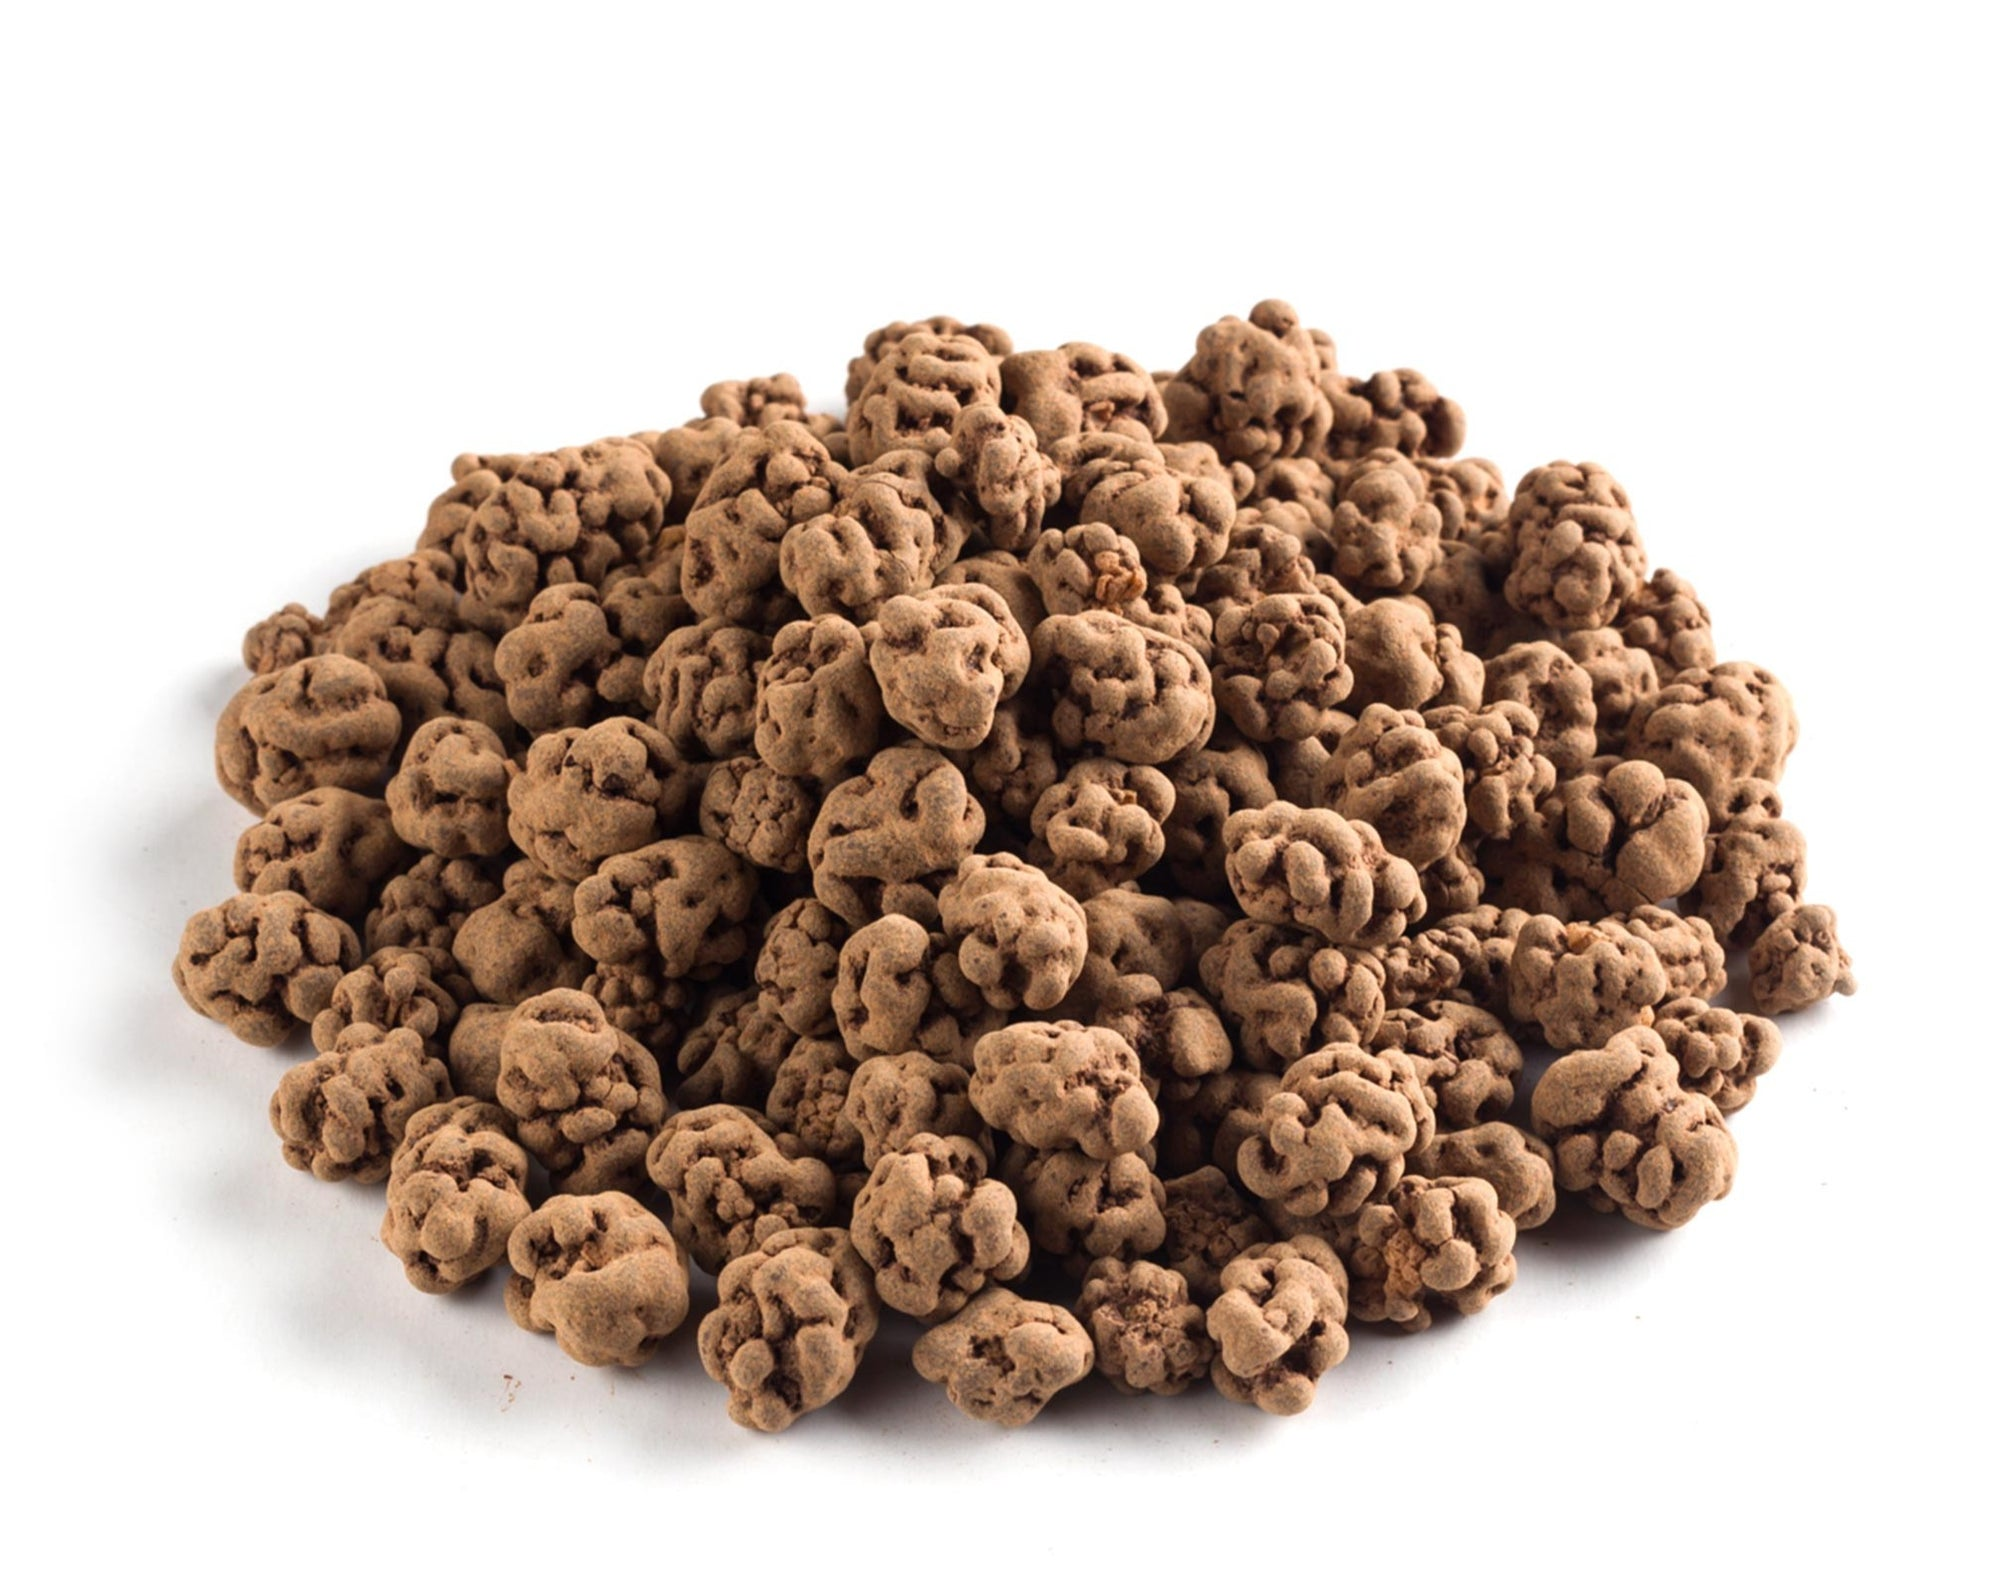 Raw Chocolate Mulberries 450g